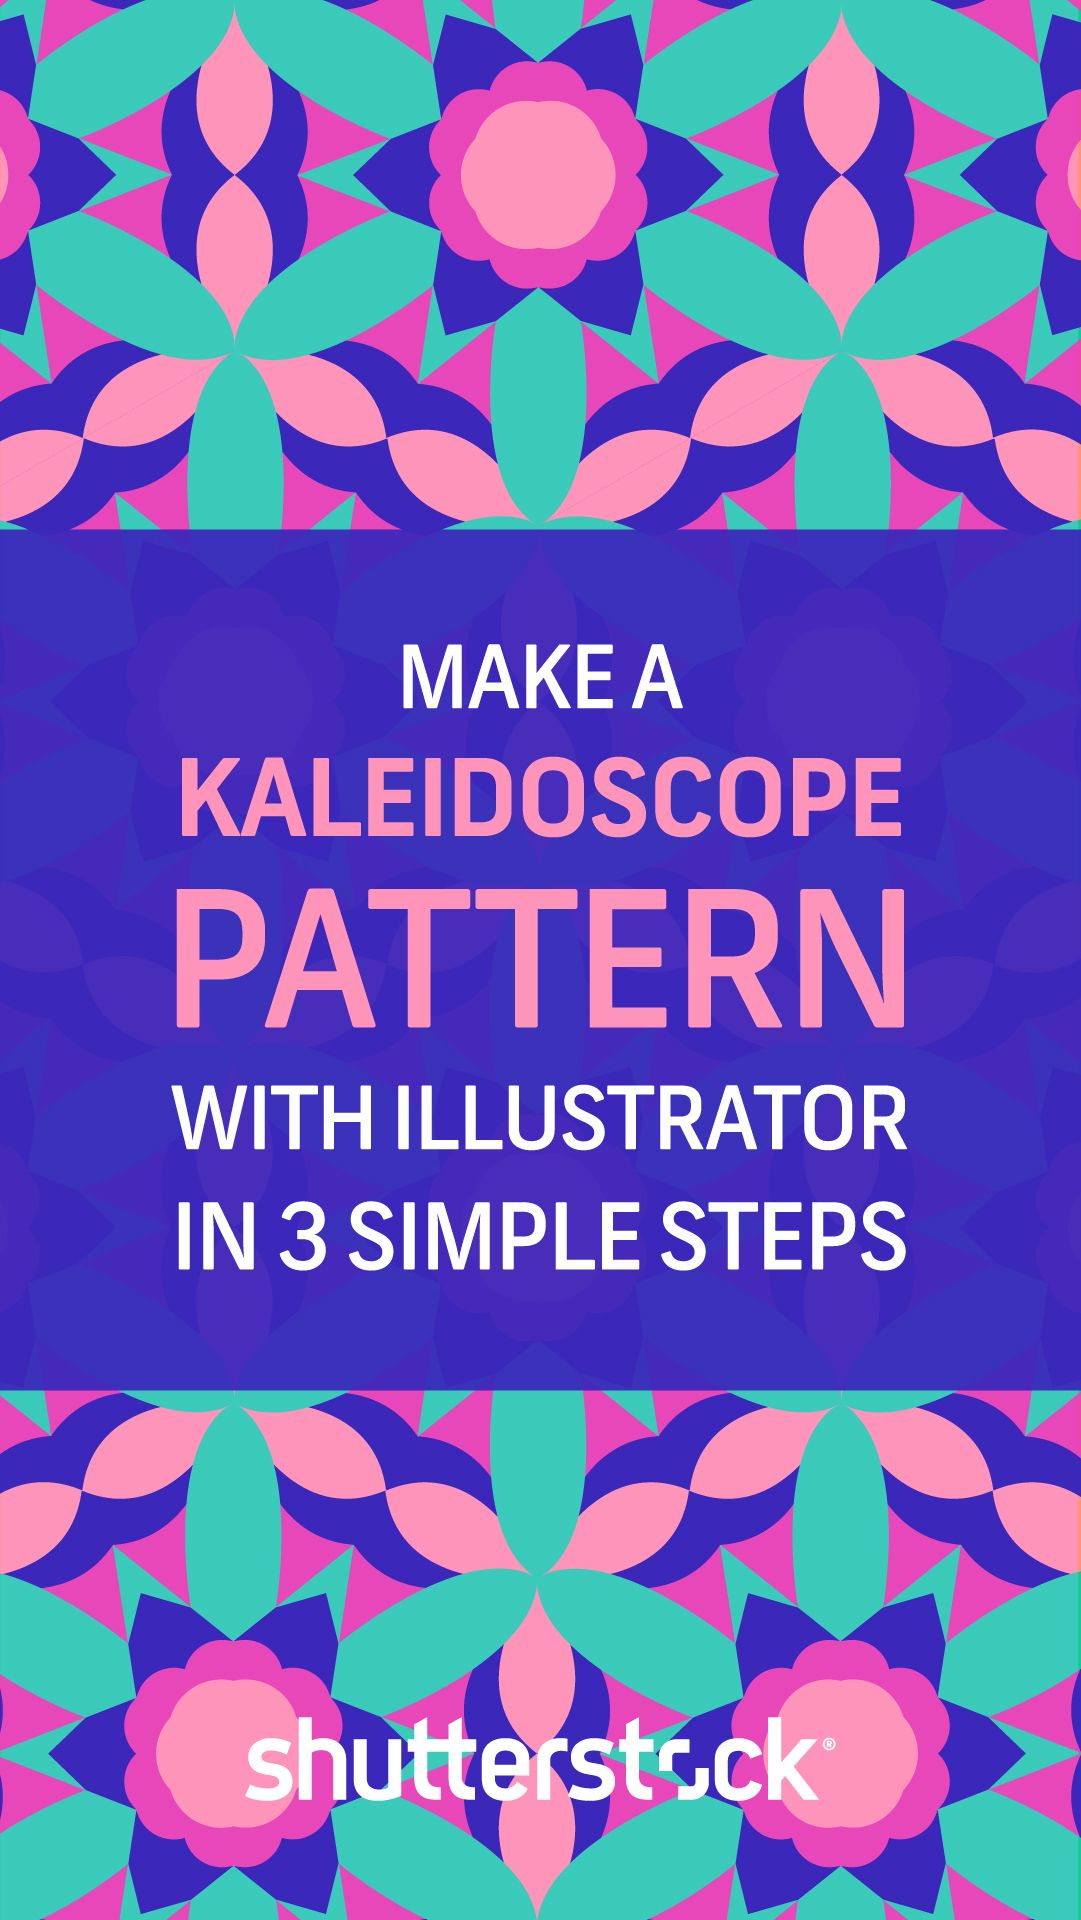 Make A Kaleidoscope Pattern With Illustrator In Three Simple Steps